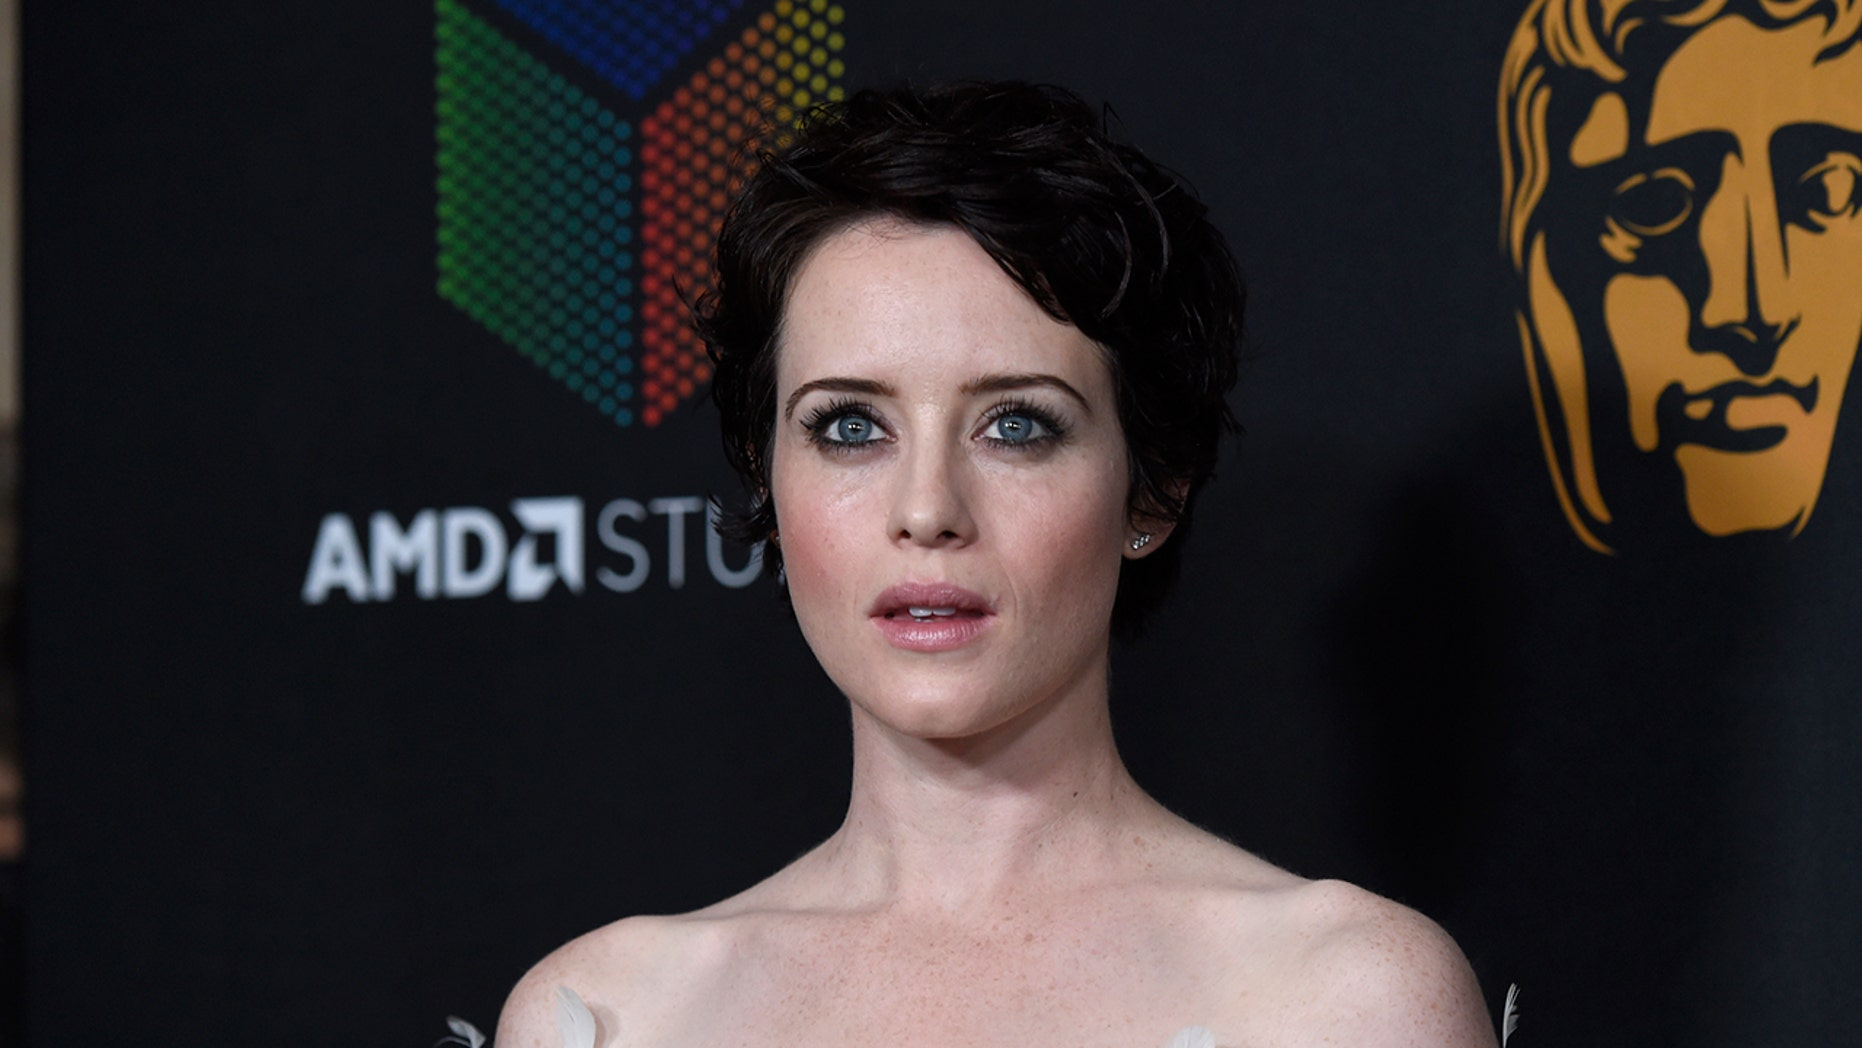 Claire Foy said she was furious after an encounter with an anti-#MeToo protester. (Photo by Chris Pizzello/Invision/AP)